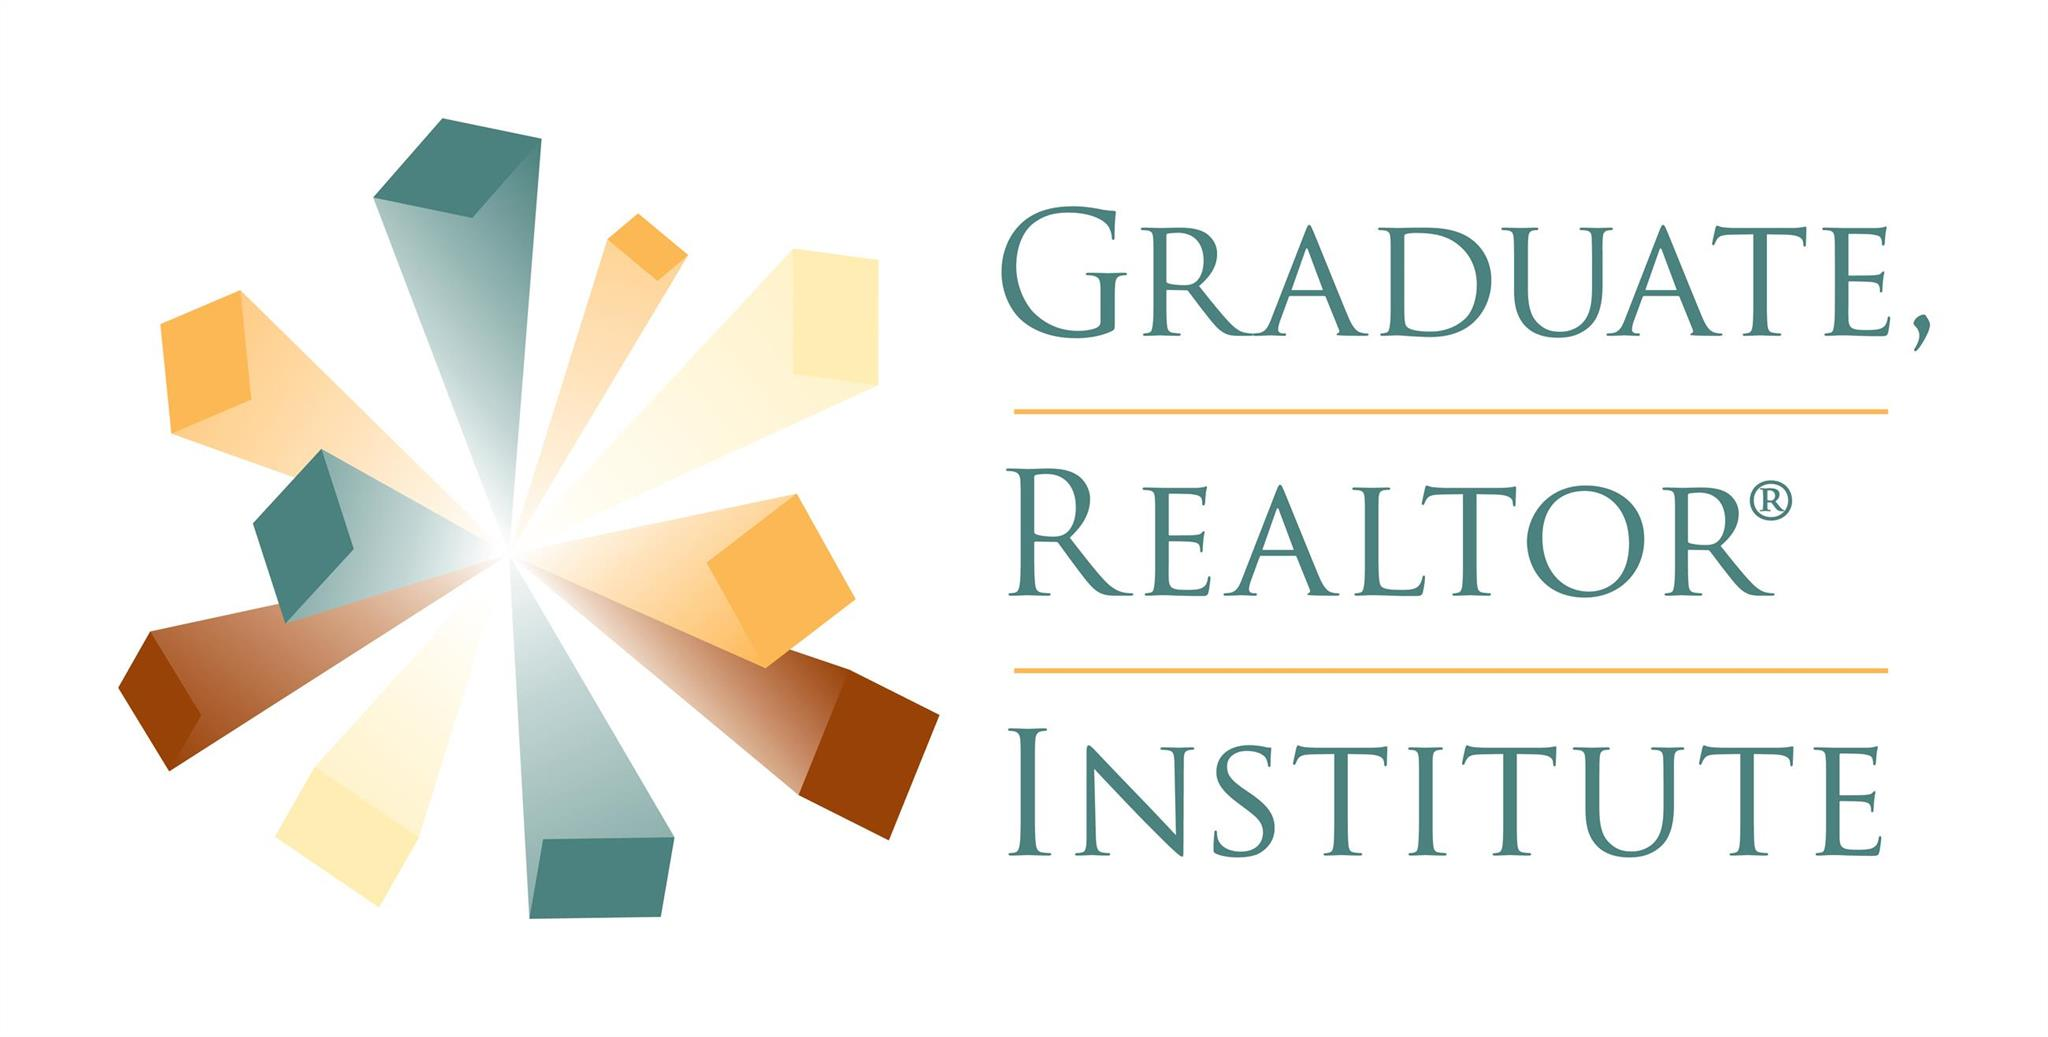 Graduate-Realtor-Institute-RGB.jpg